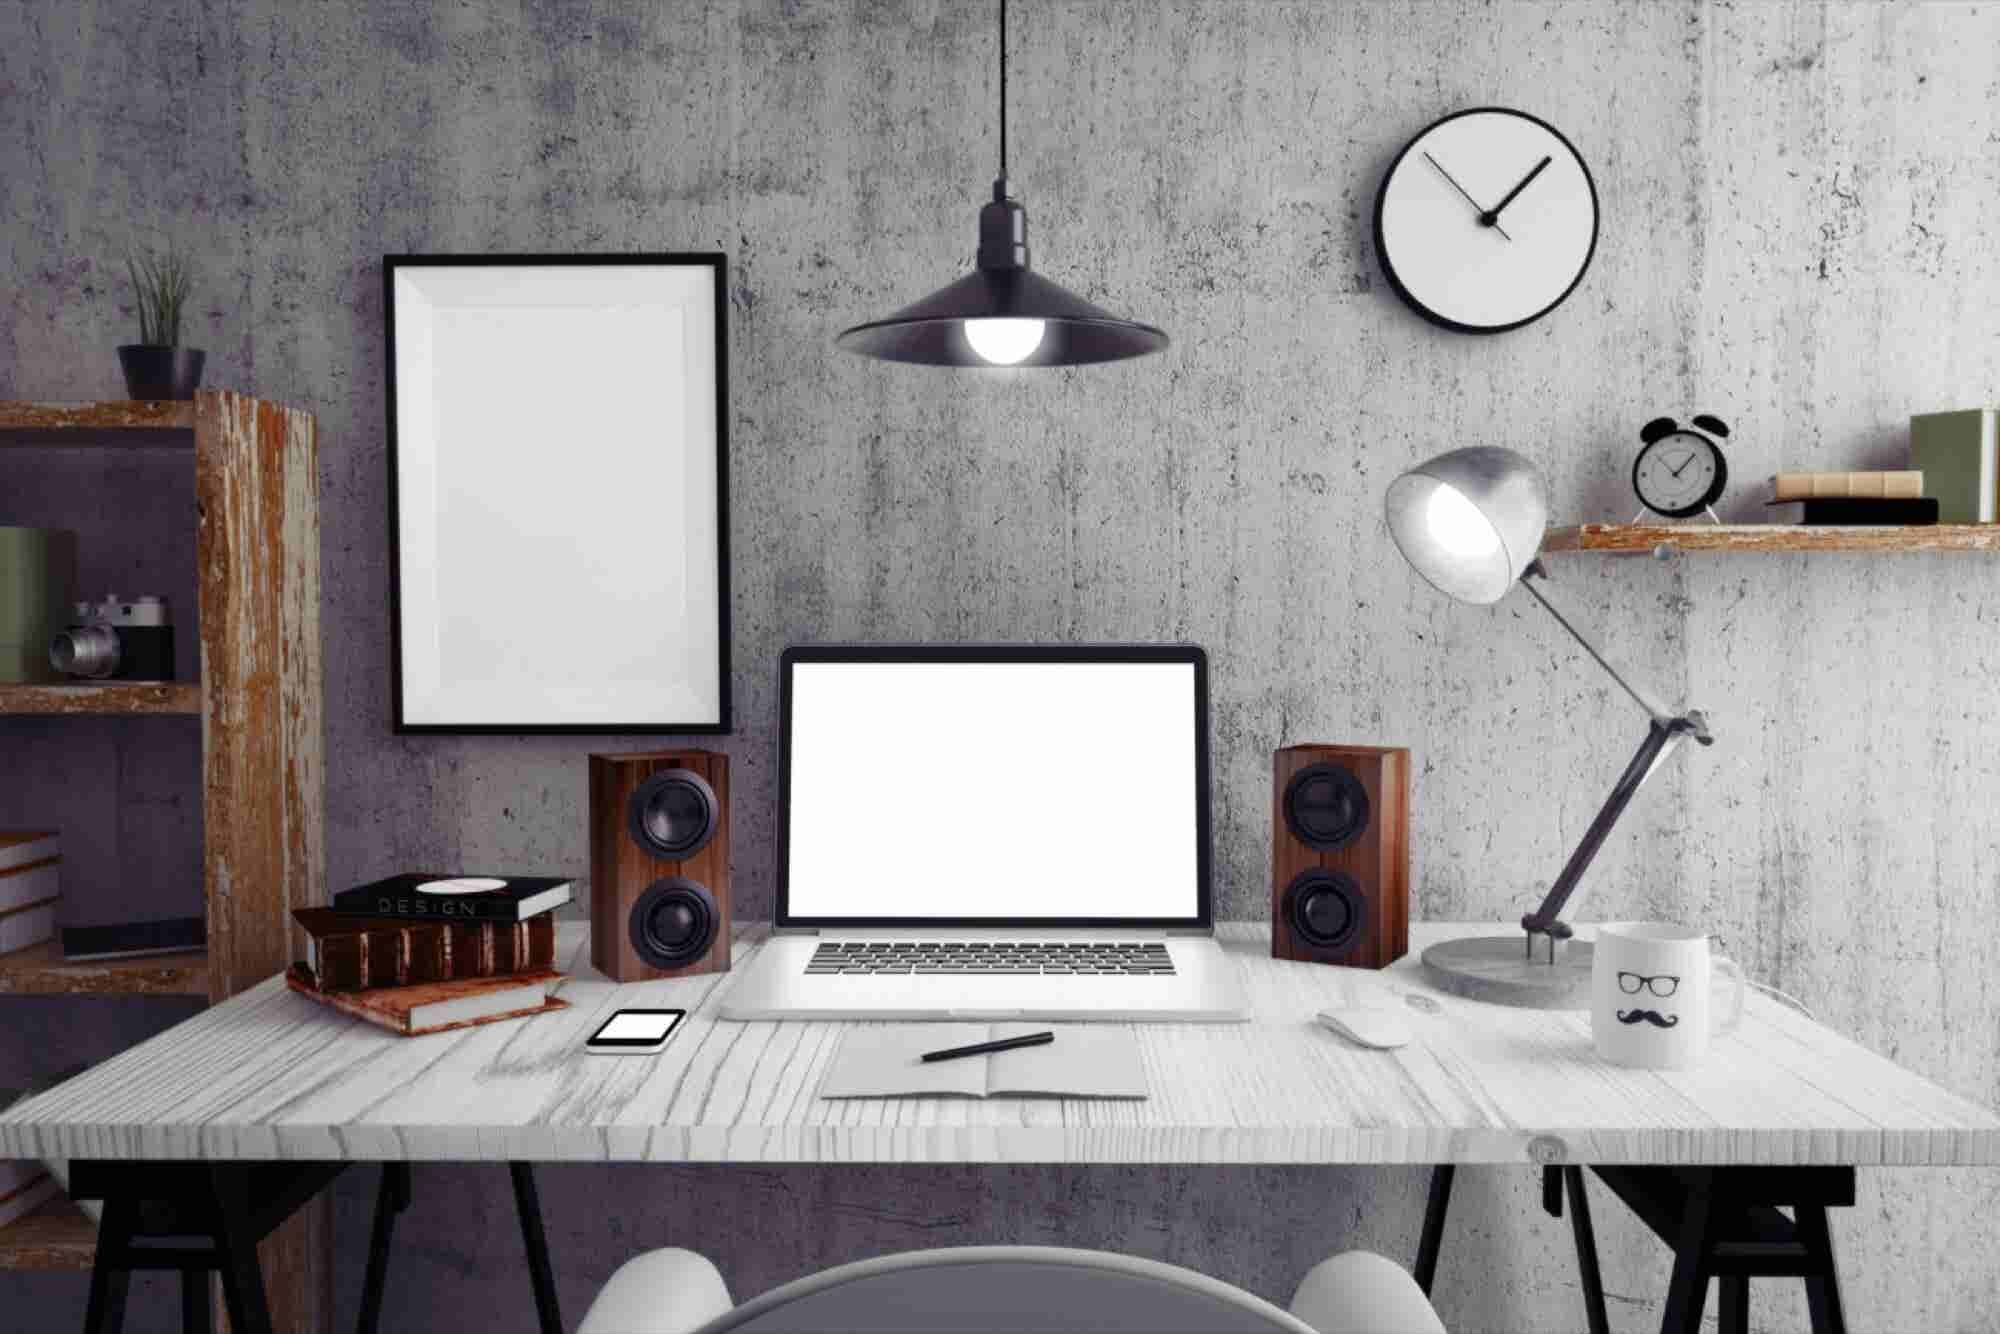 Productivity Begins With The Basics